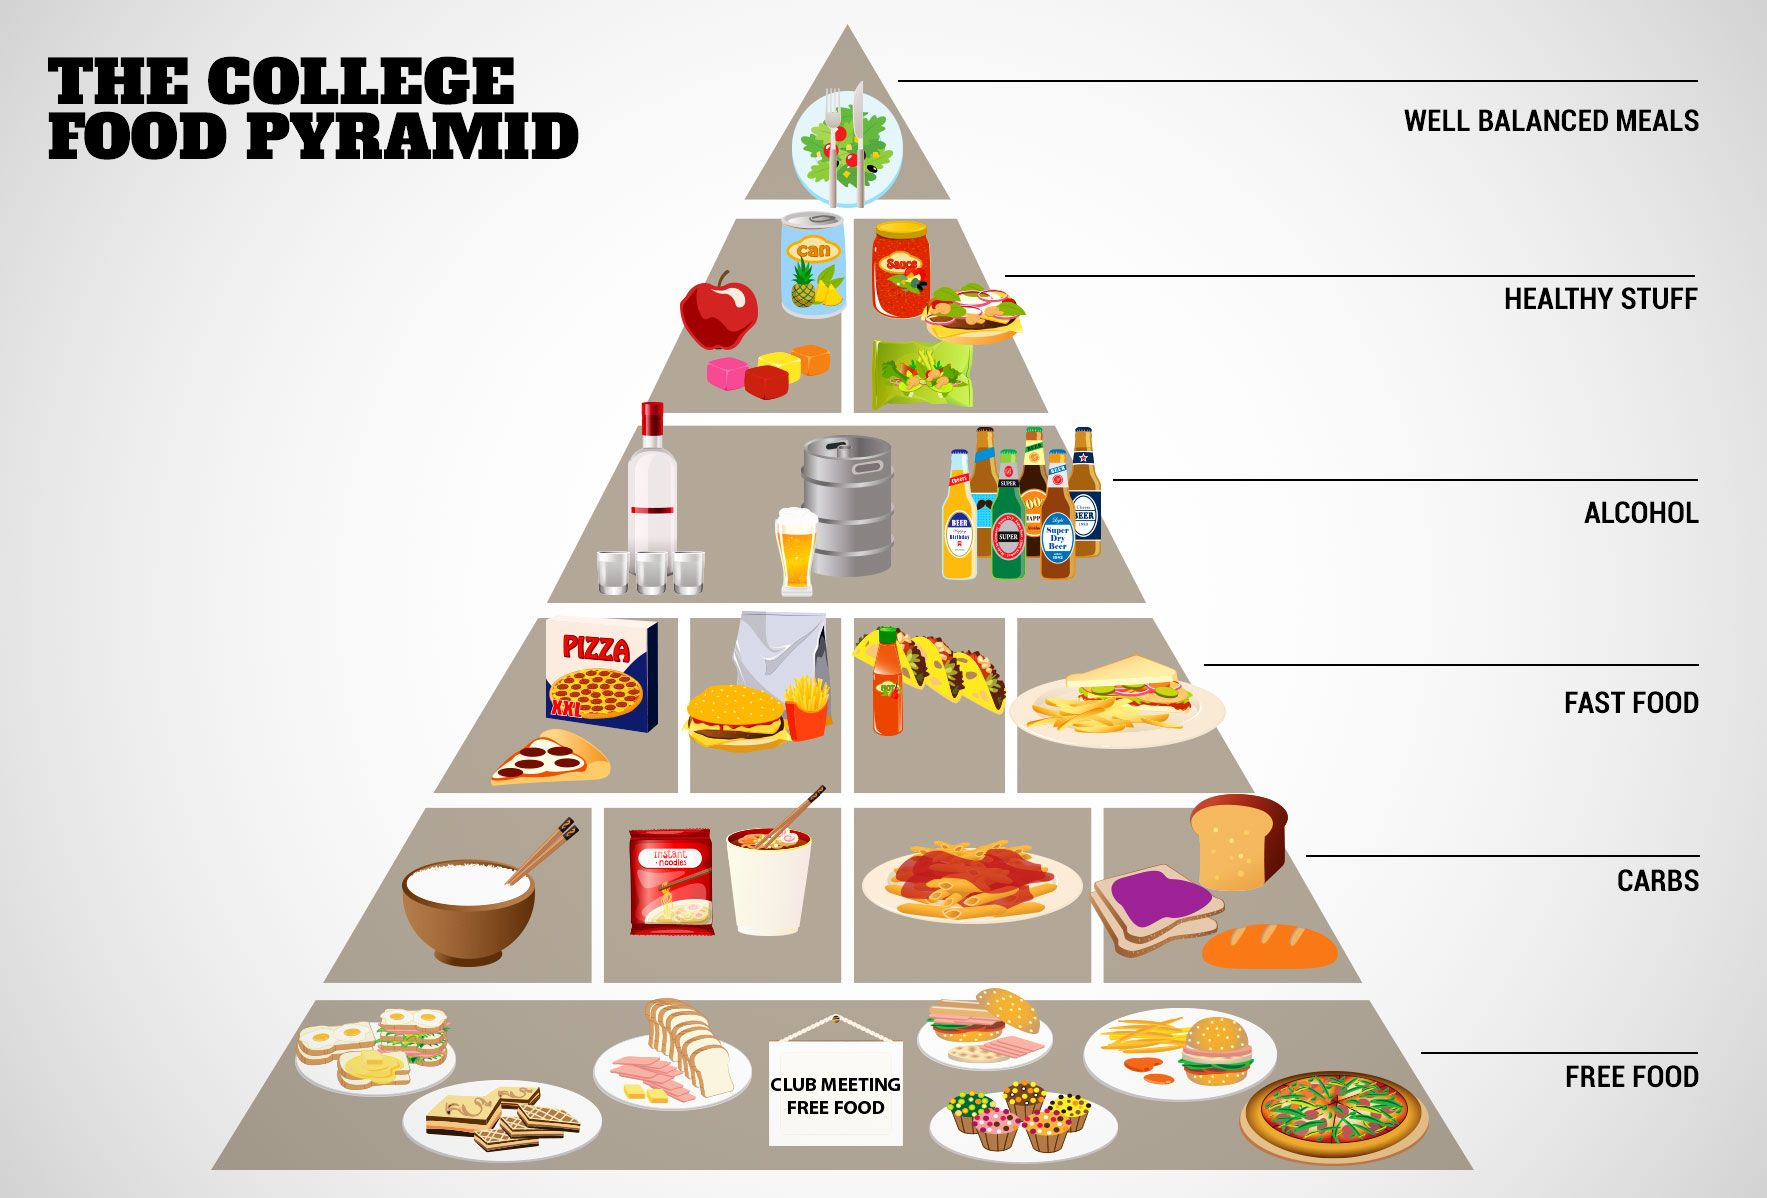 The college food pyramid